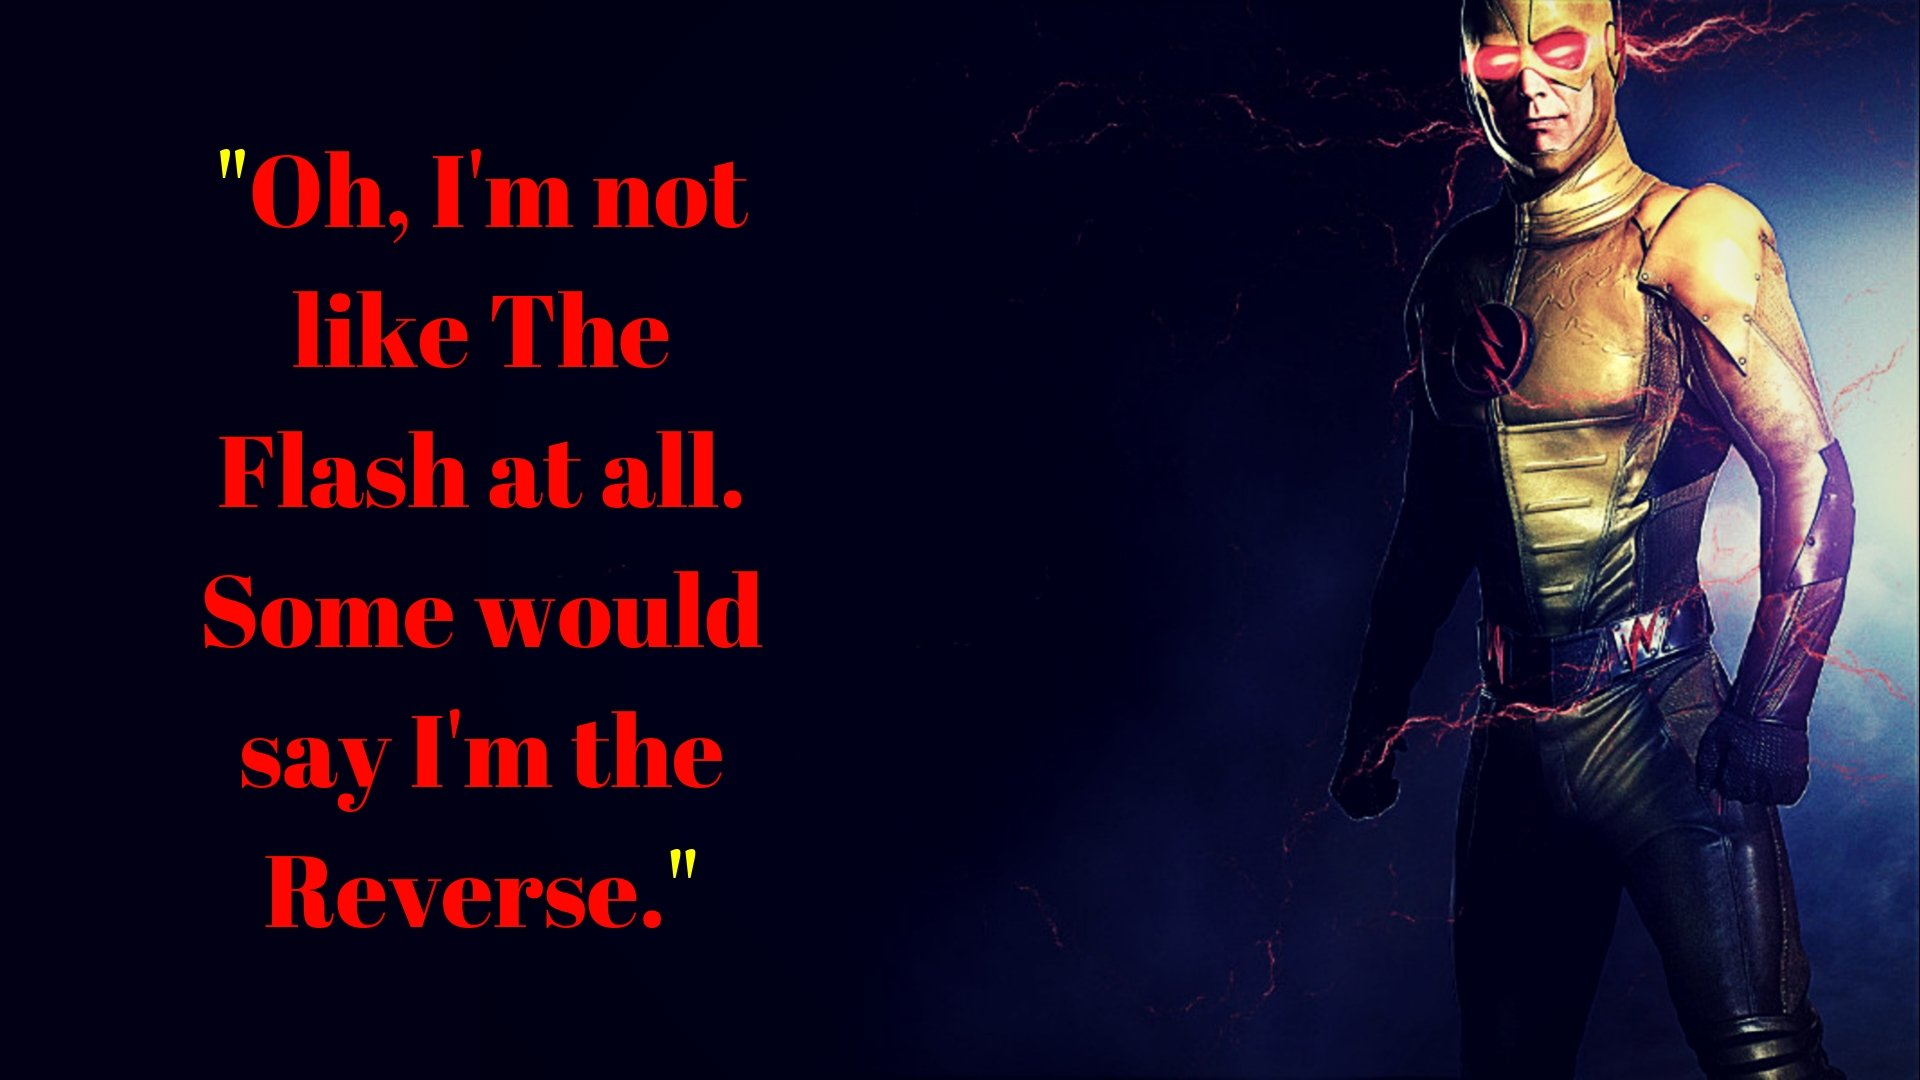 Reverse Flash Wallpaper With Quote Hd Wallpaper Background Image